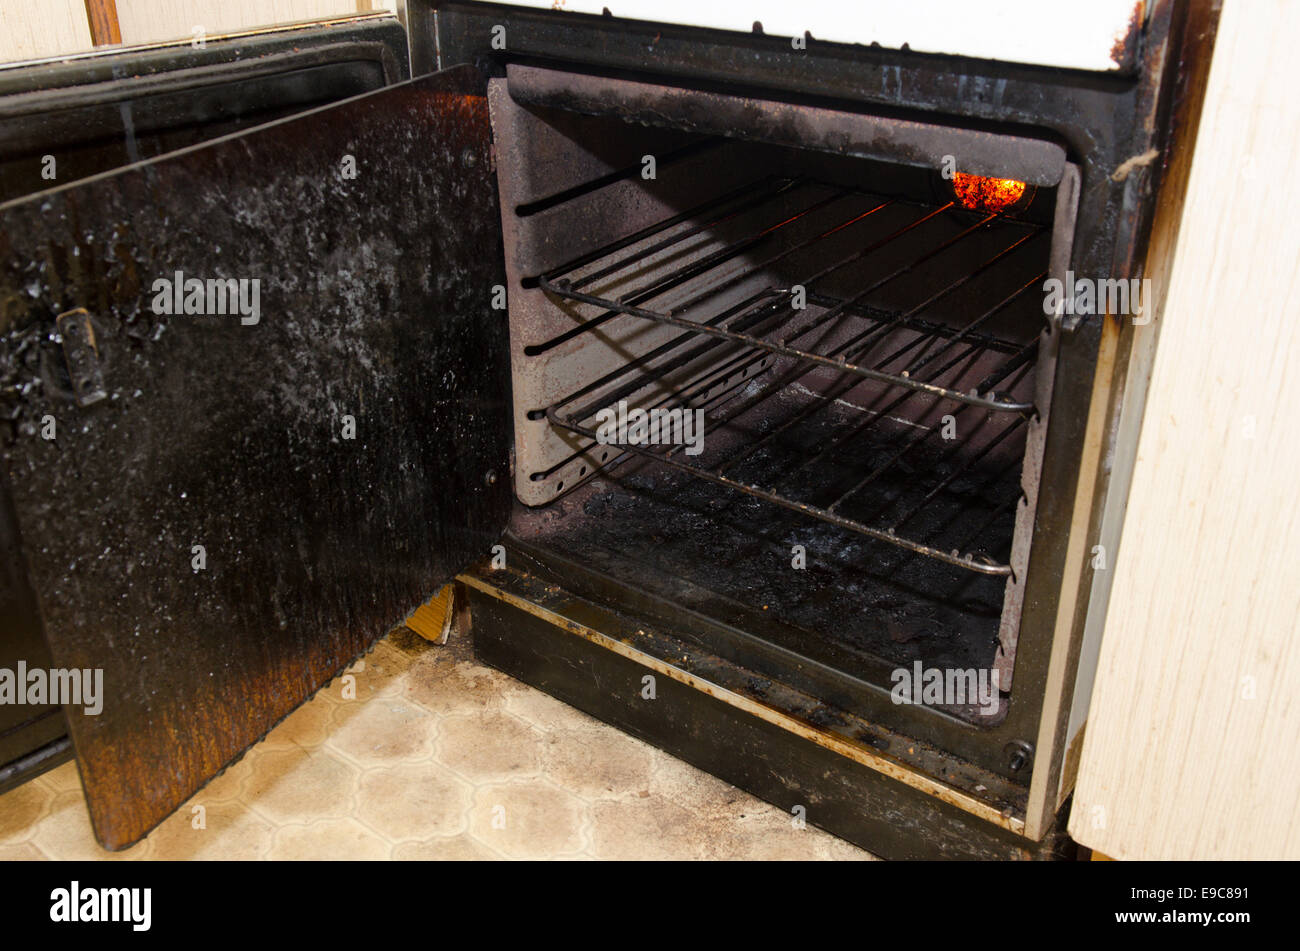 Filthy oven left by tenants in rented property - Stock Image